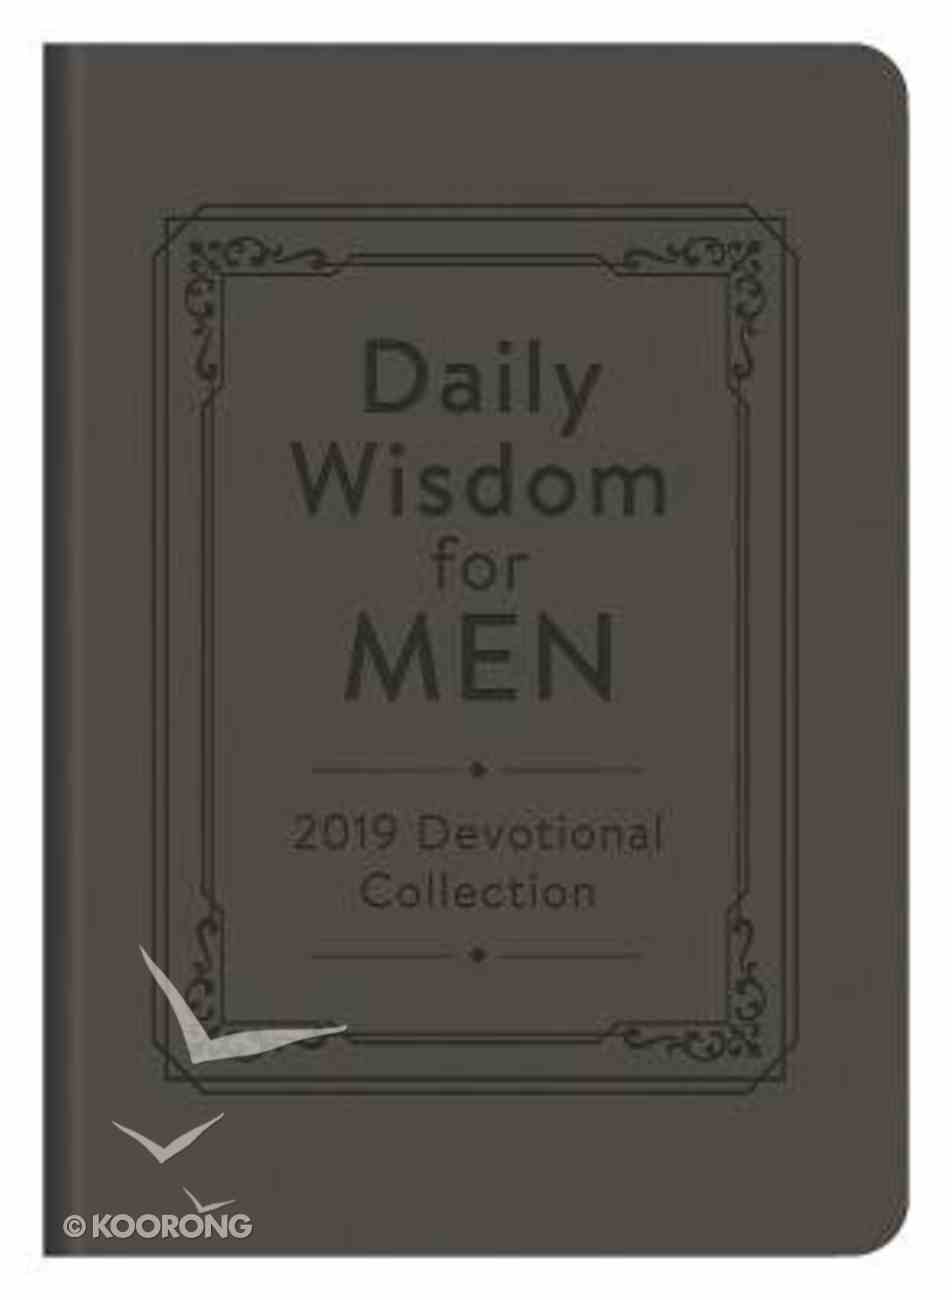 Daily Wisdom For Men 2019 Devotional Collection Paperback